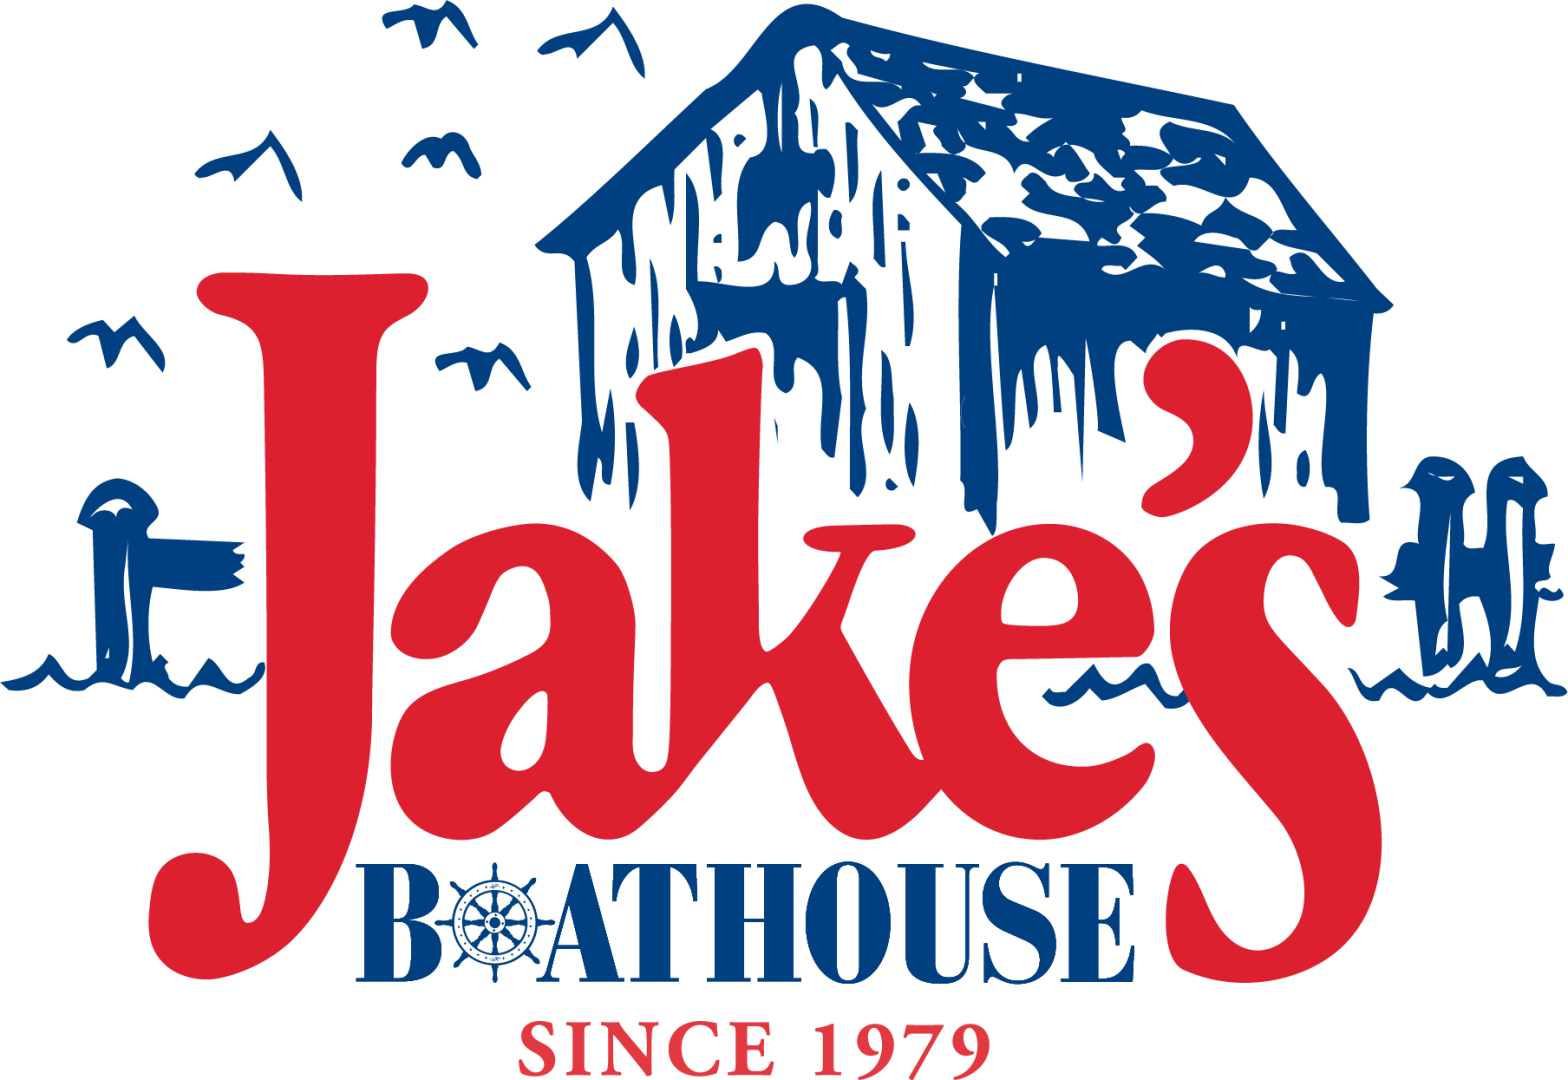 Jake's Boathouse (Brampton) Restaurant - Picture